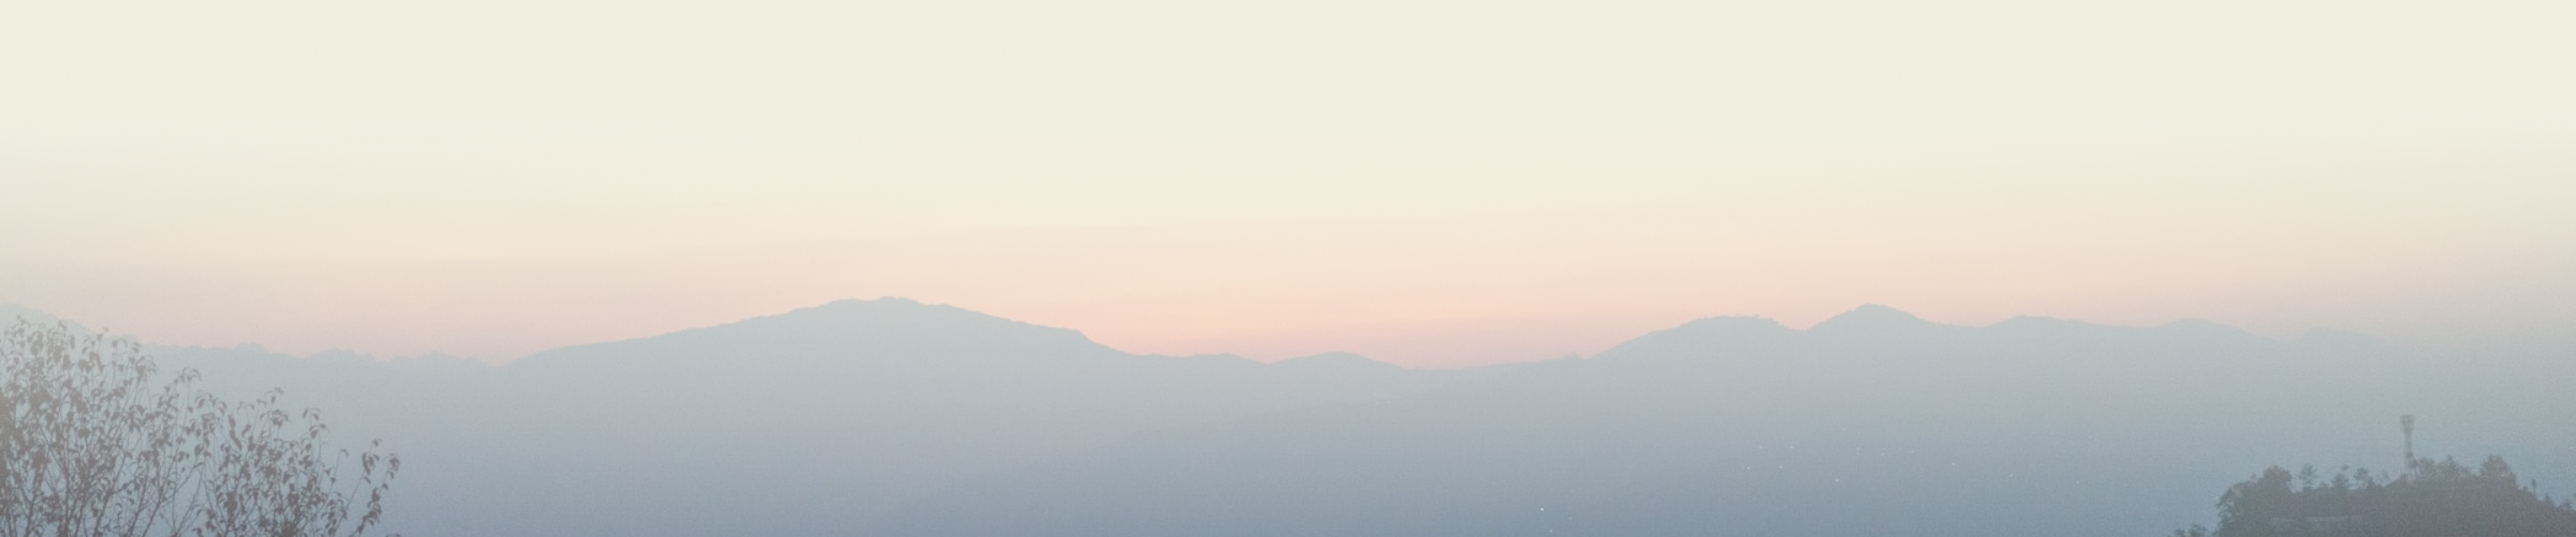 a soft pink and orange sunset behind a mountain range.